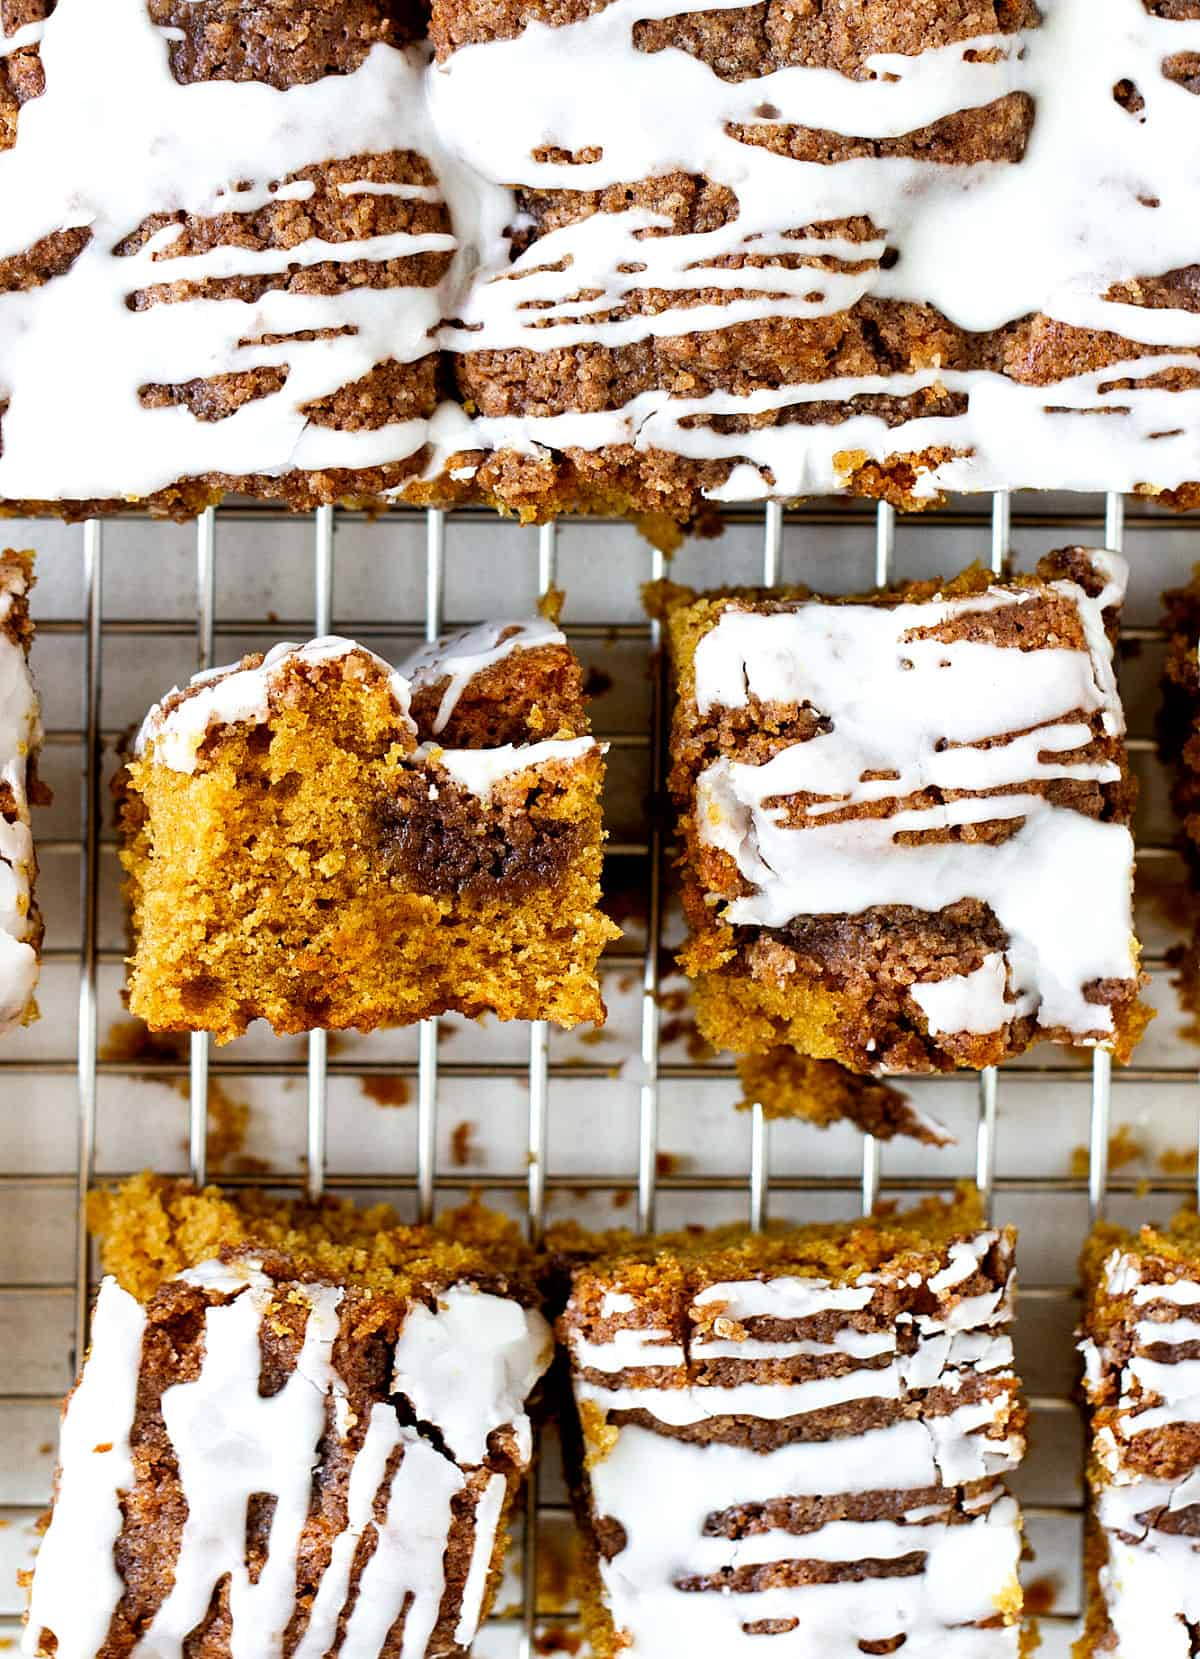 Several squares of iced pumpkin cake on a metal wire rack